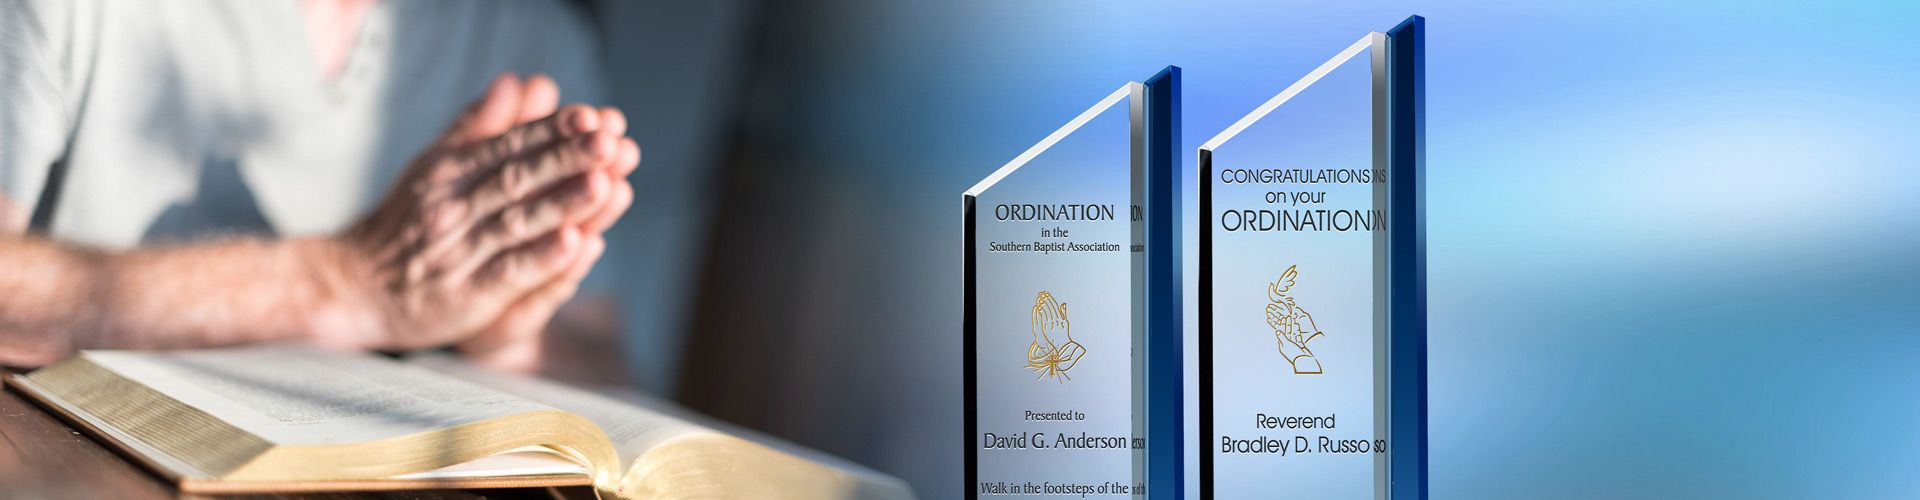 Personalized ordination gift plaques for pastors priests deacons diy awards for Ordination images